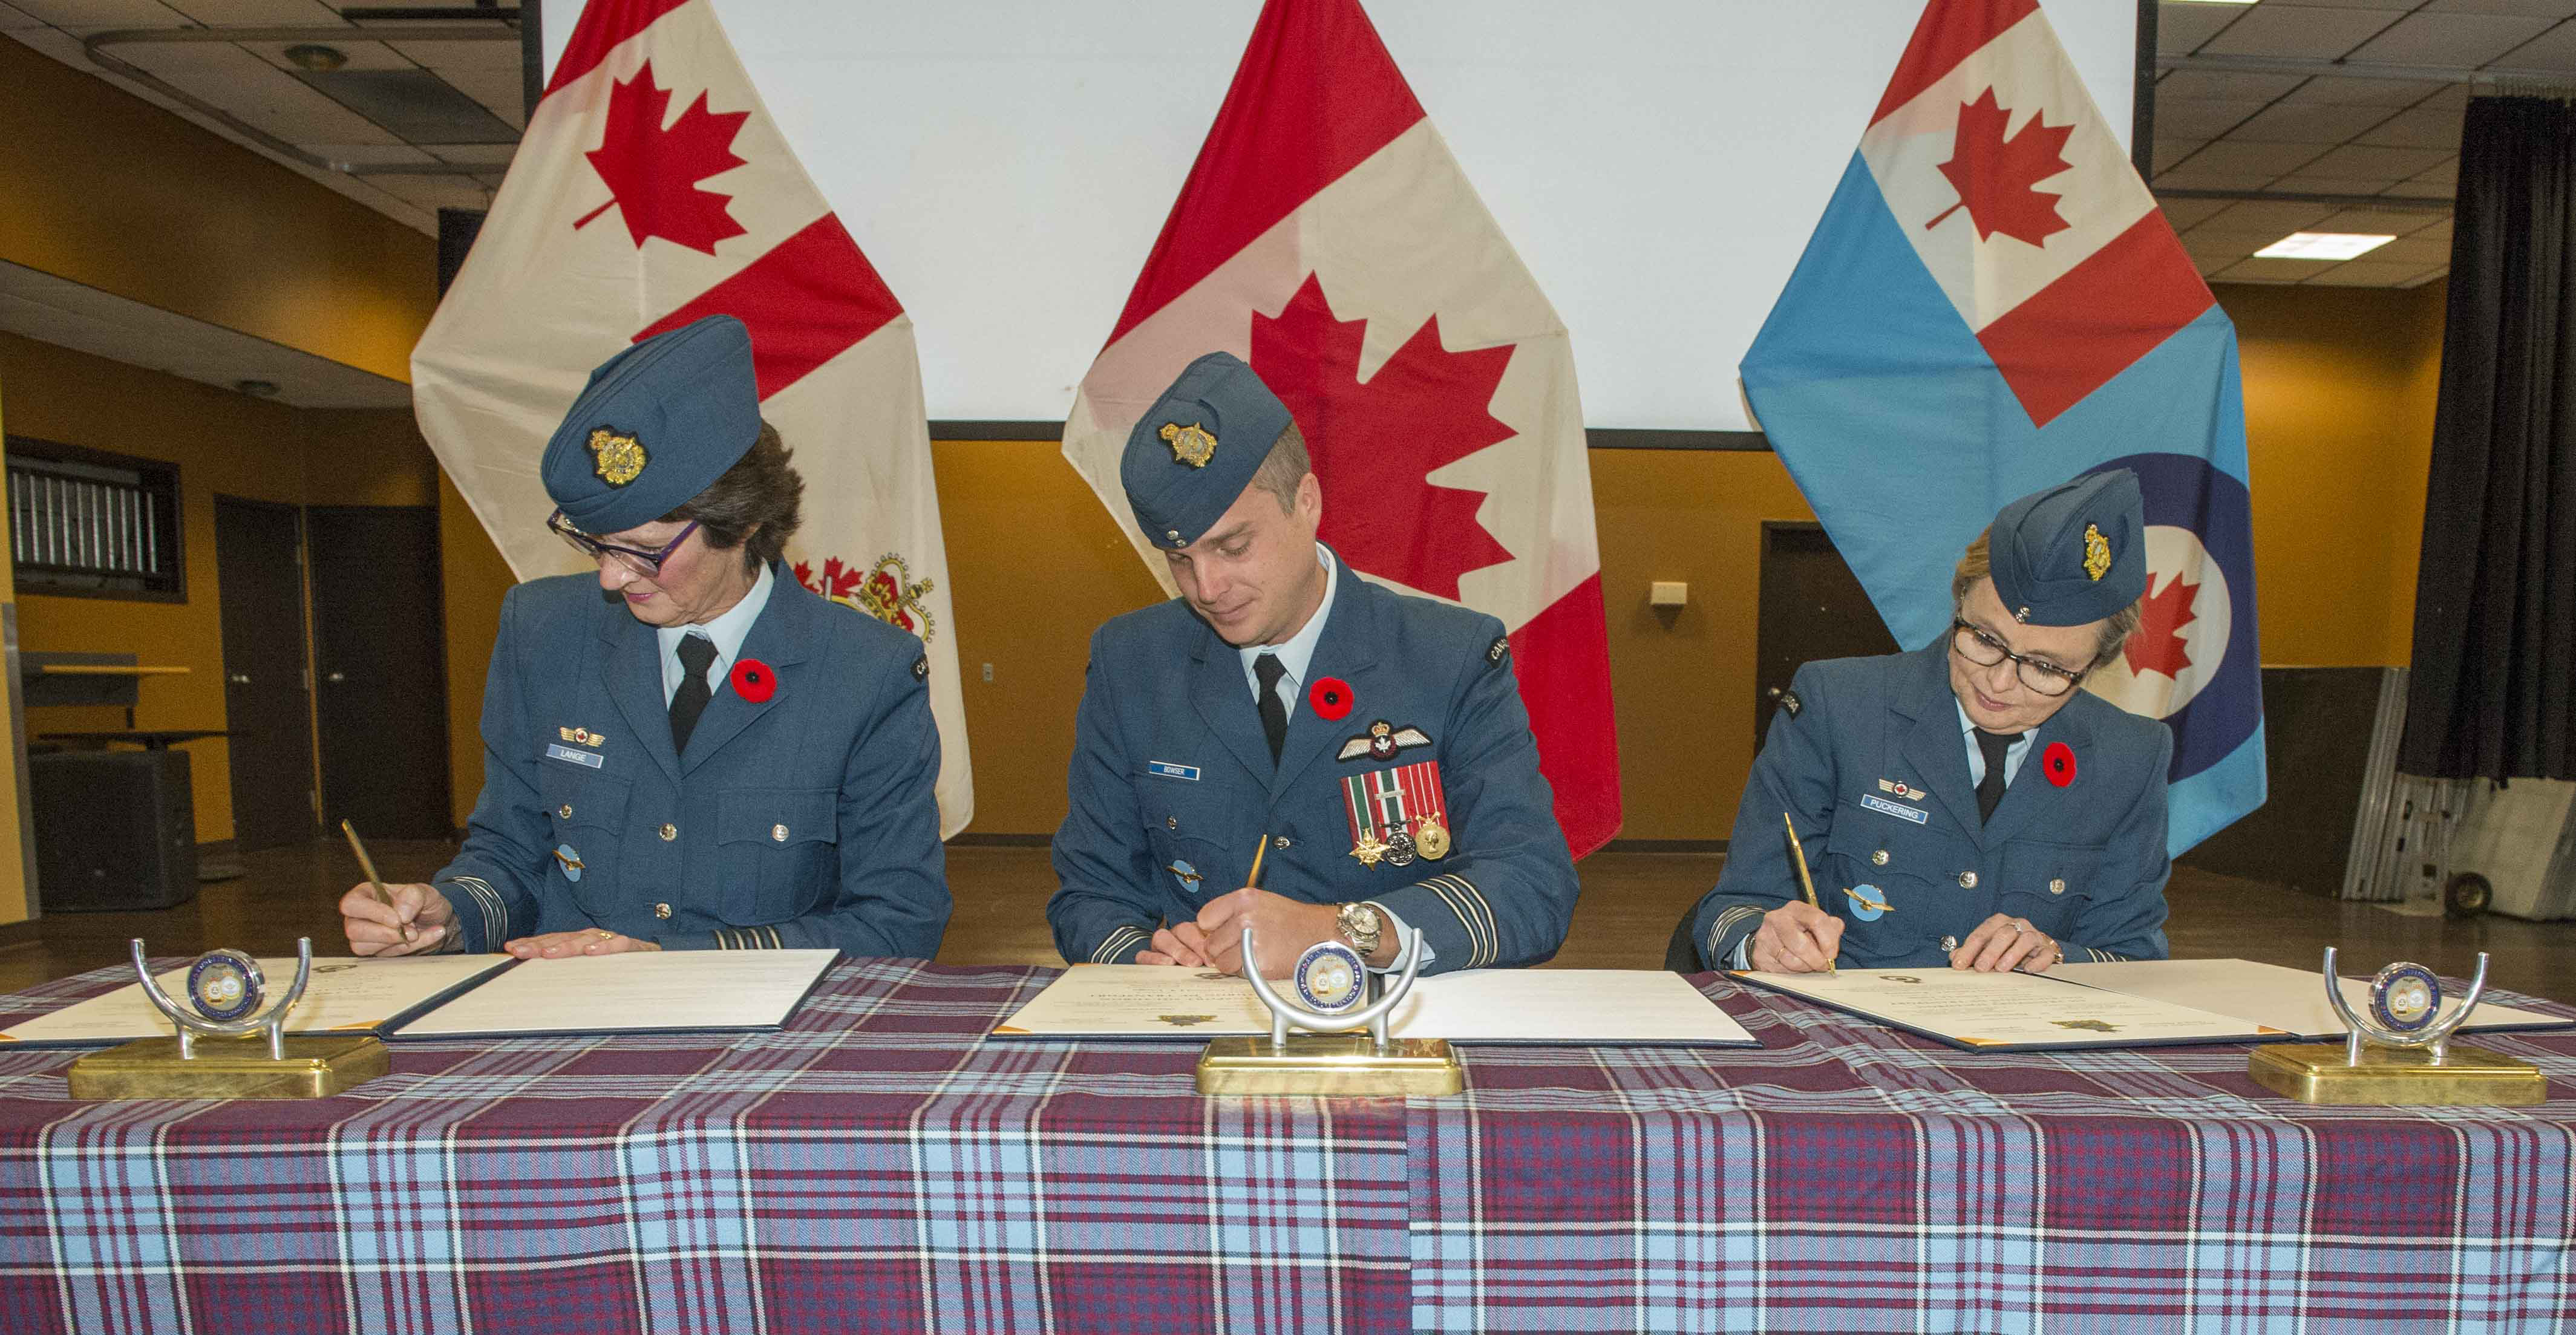 436 Squadron's outgoing honorary colonel, Julie Lange (left), 436 Squadron's commanding officer, Lieutenant-Colonel Andy Bowser, and the squadron's incoming honorary colonel, Cathie Puckering, sign the honorary colonel change of appointment documents during a ceremony at 8 Wing Trenton, Ontario on November 1, 2019. PHOTO: Corporal Rob Stanley, TN08-2019-0412-007